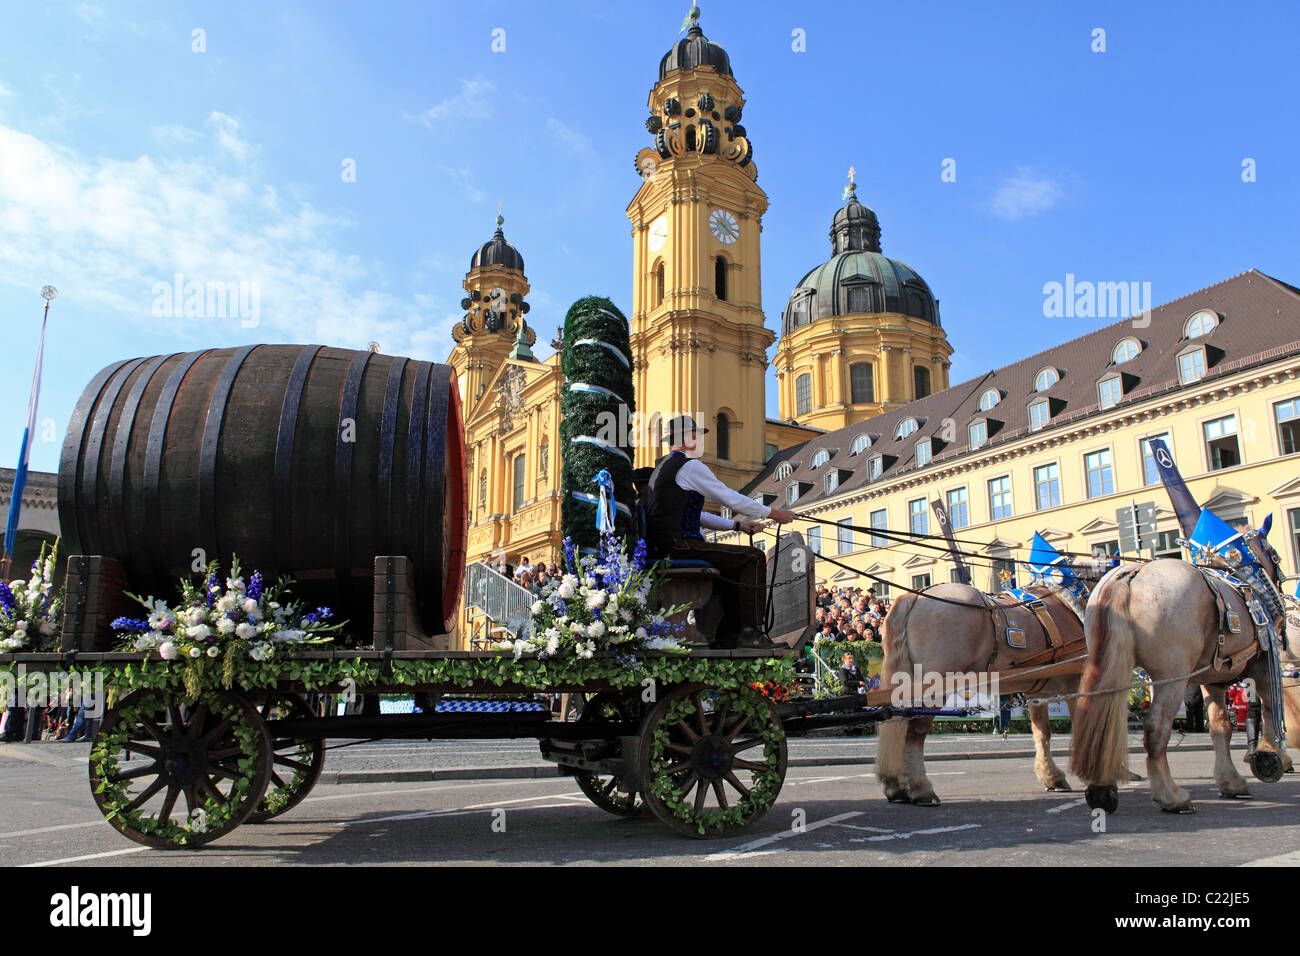 horse parade munich stockfotos horse parade munich bilder alamy. Black Bedroom Furniture Sets. Home Design Ideas